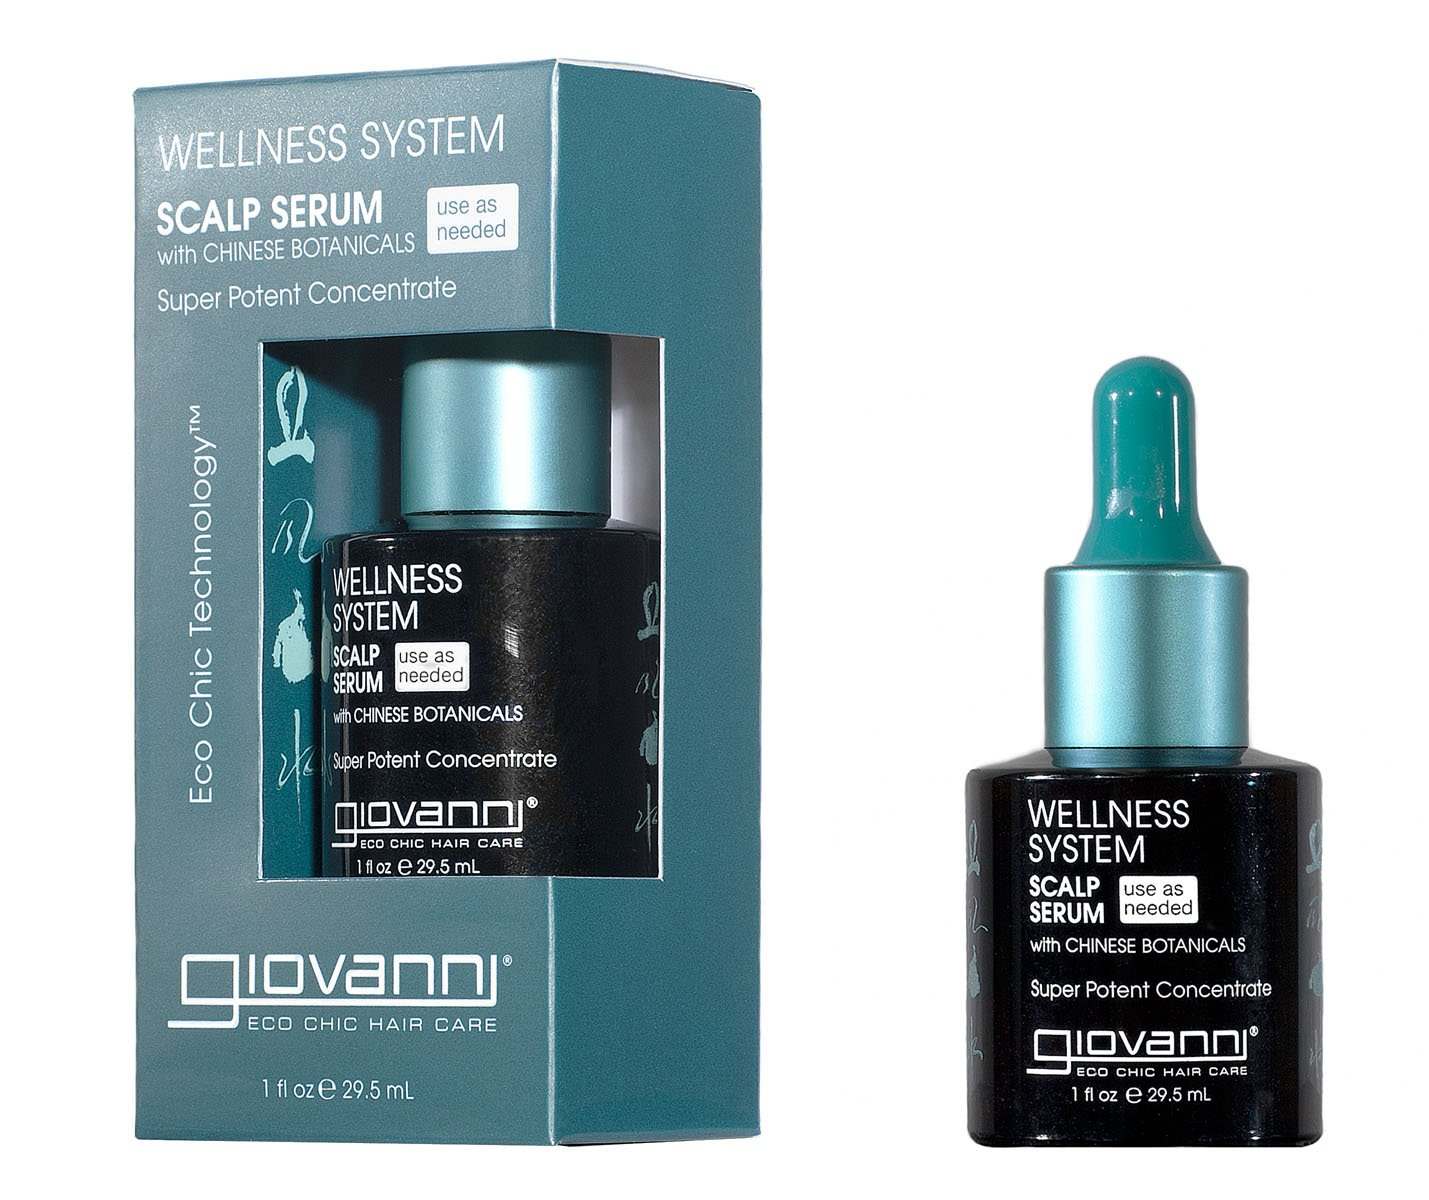 Amazon.com : Giovanni Wellness System Scalp Serum, 1 Fluid Ounce ...